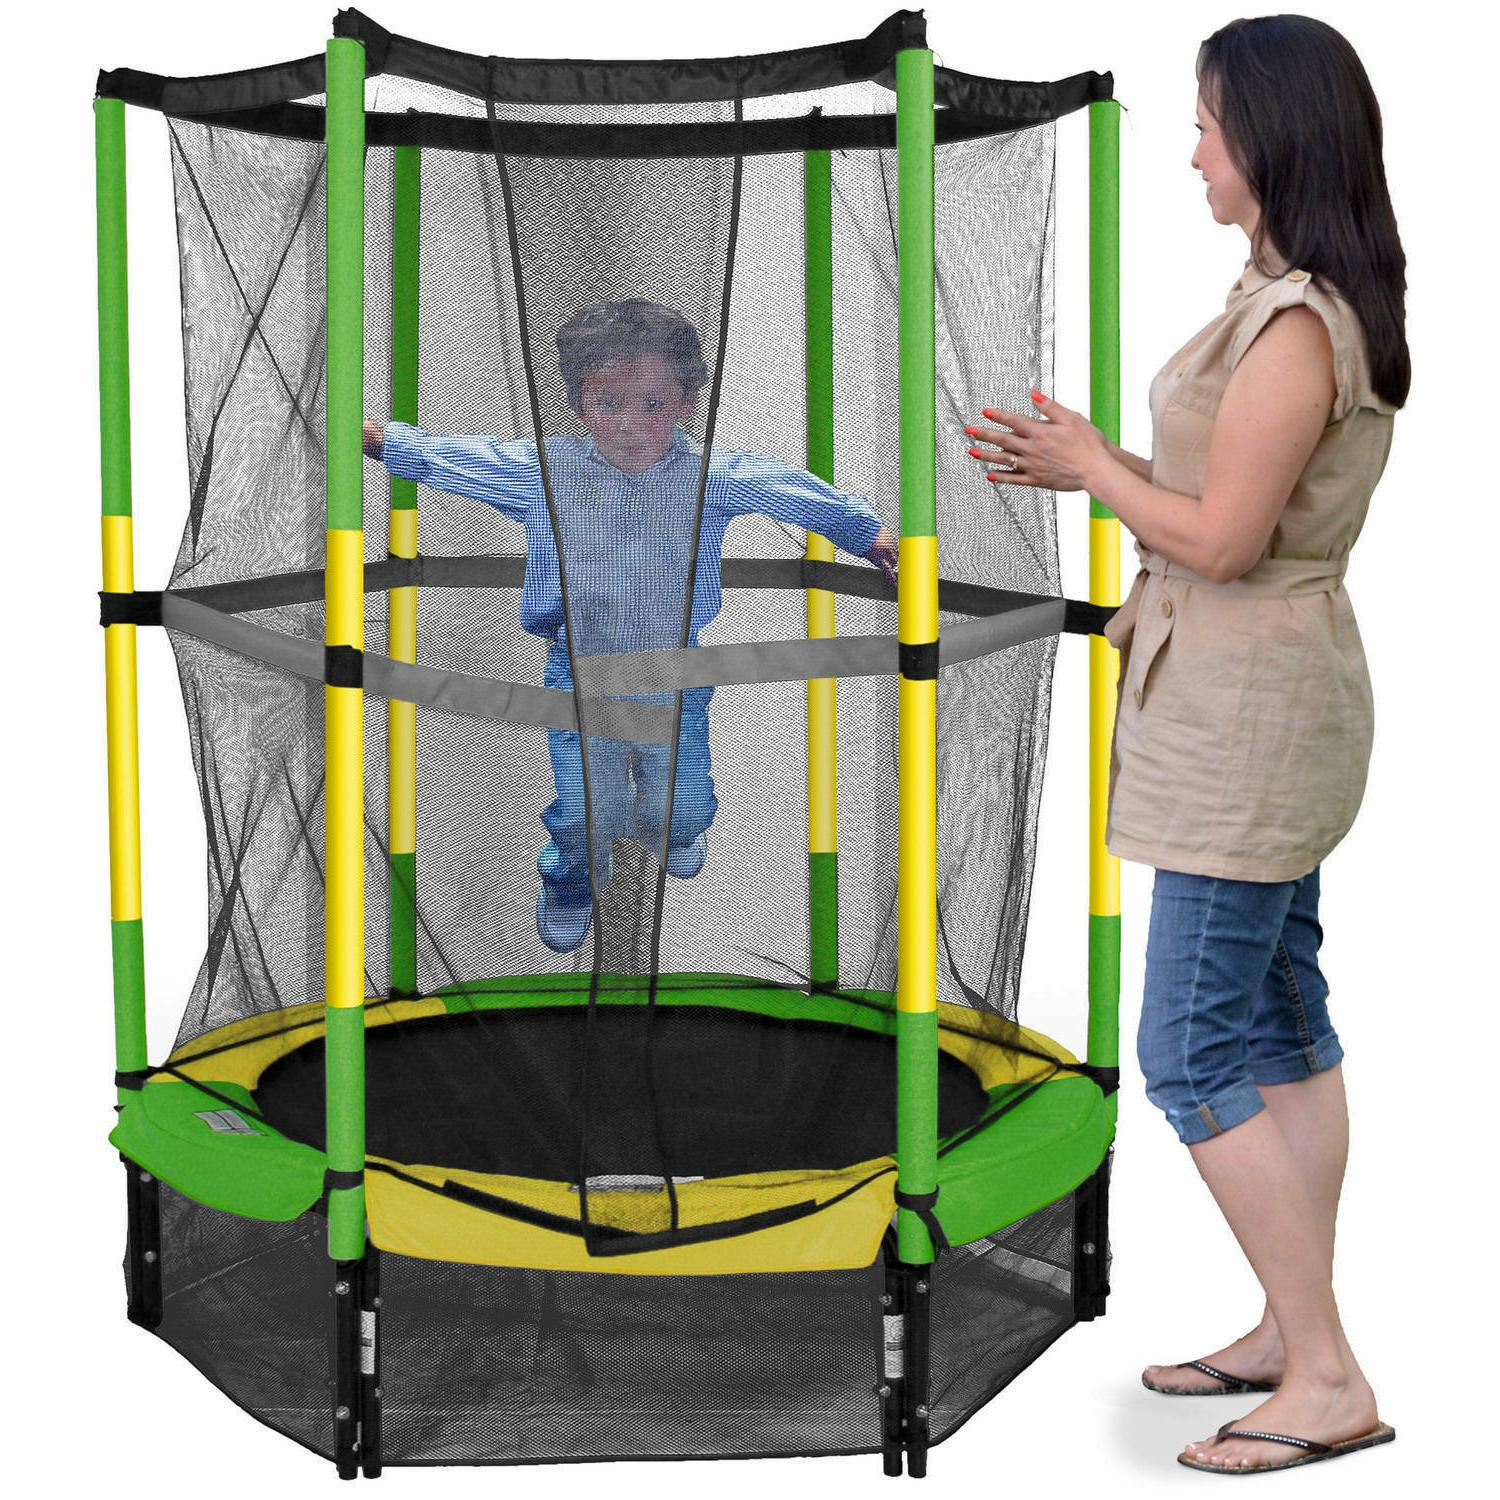 Bounce My First Trampoline, Enclosure, Green